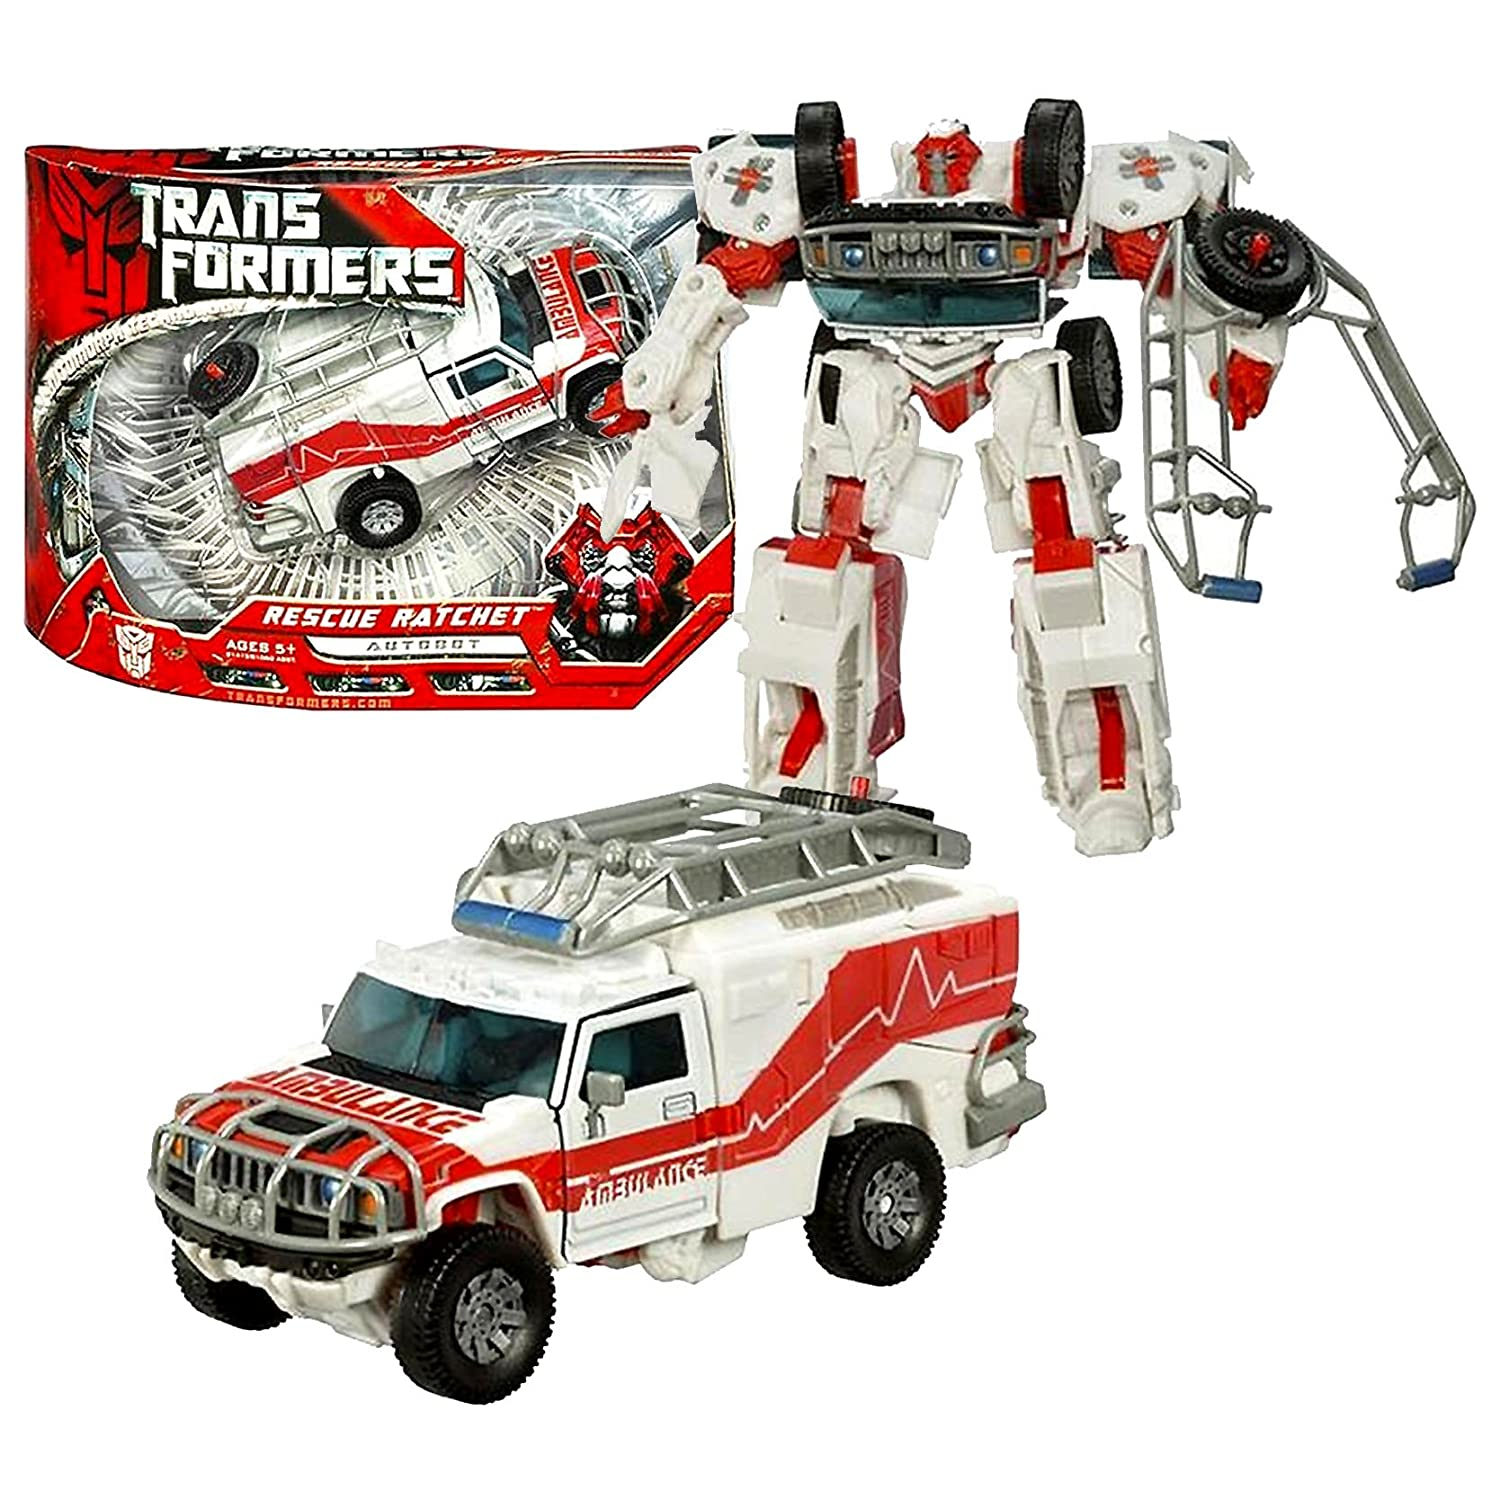 Hasbro Year 2007 Transformers Movie Series 1 Voyager Class 7 Inch Tall Robot Action Figure - Autobot RESCUE RATCHET with Automorph Forearm Cannon and Hidden Axe (Vehicle Mode: Hummer H2 Ambulance) transformers robots in disguise combiners 6 inch action figure hightower autobot crane